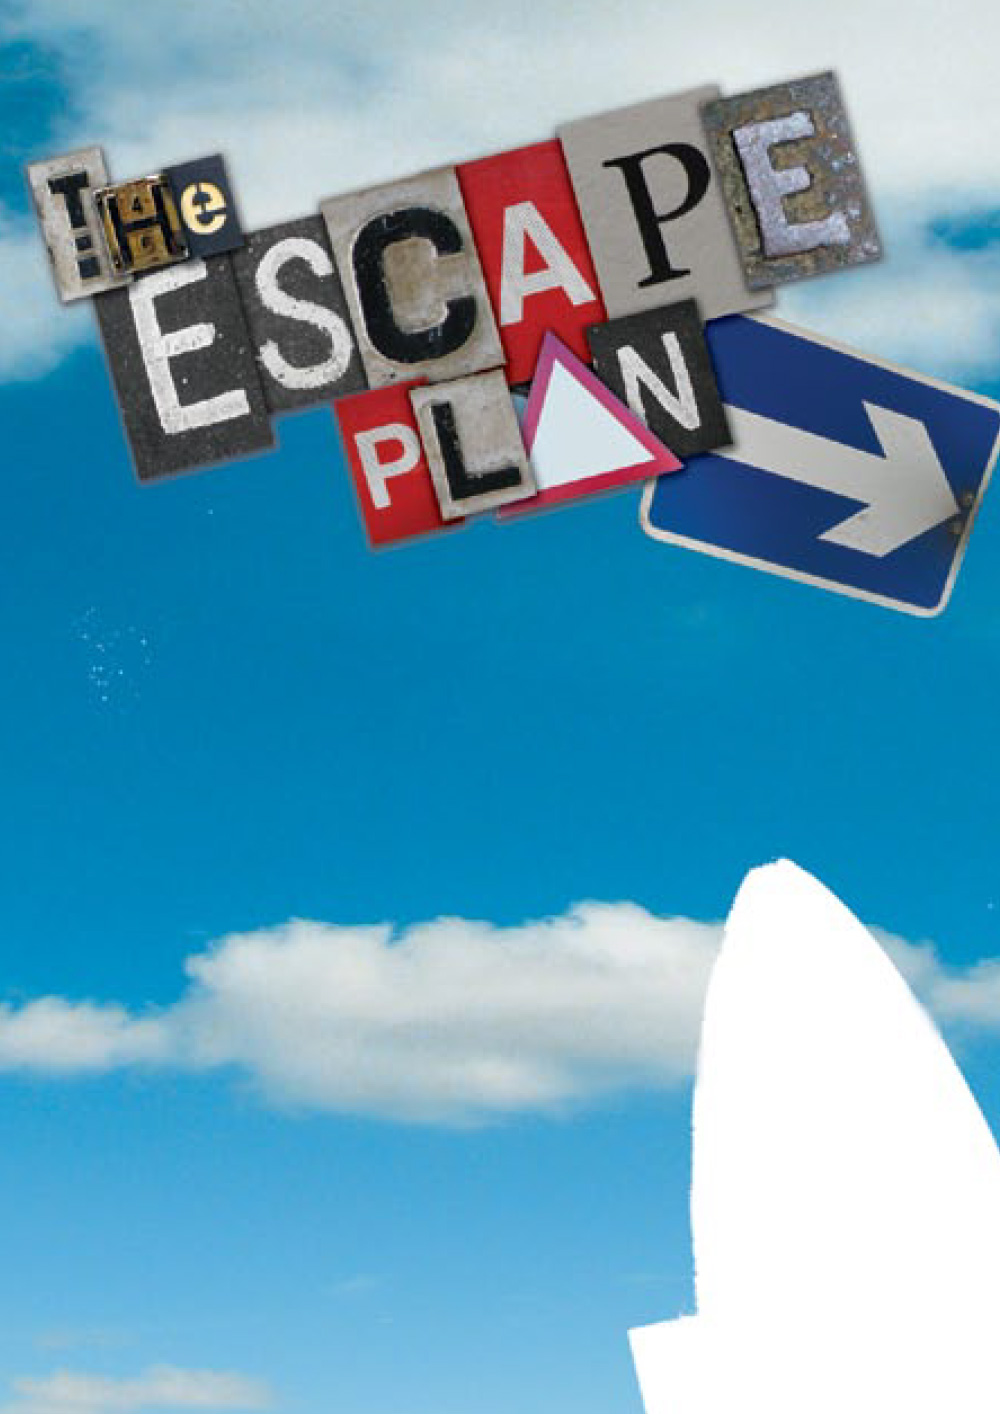 The front cover of the escape plan